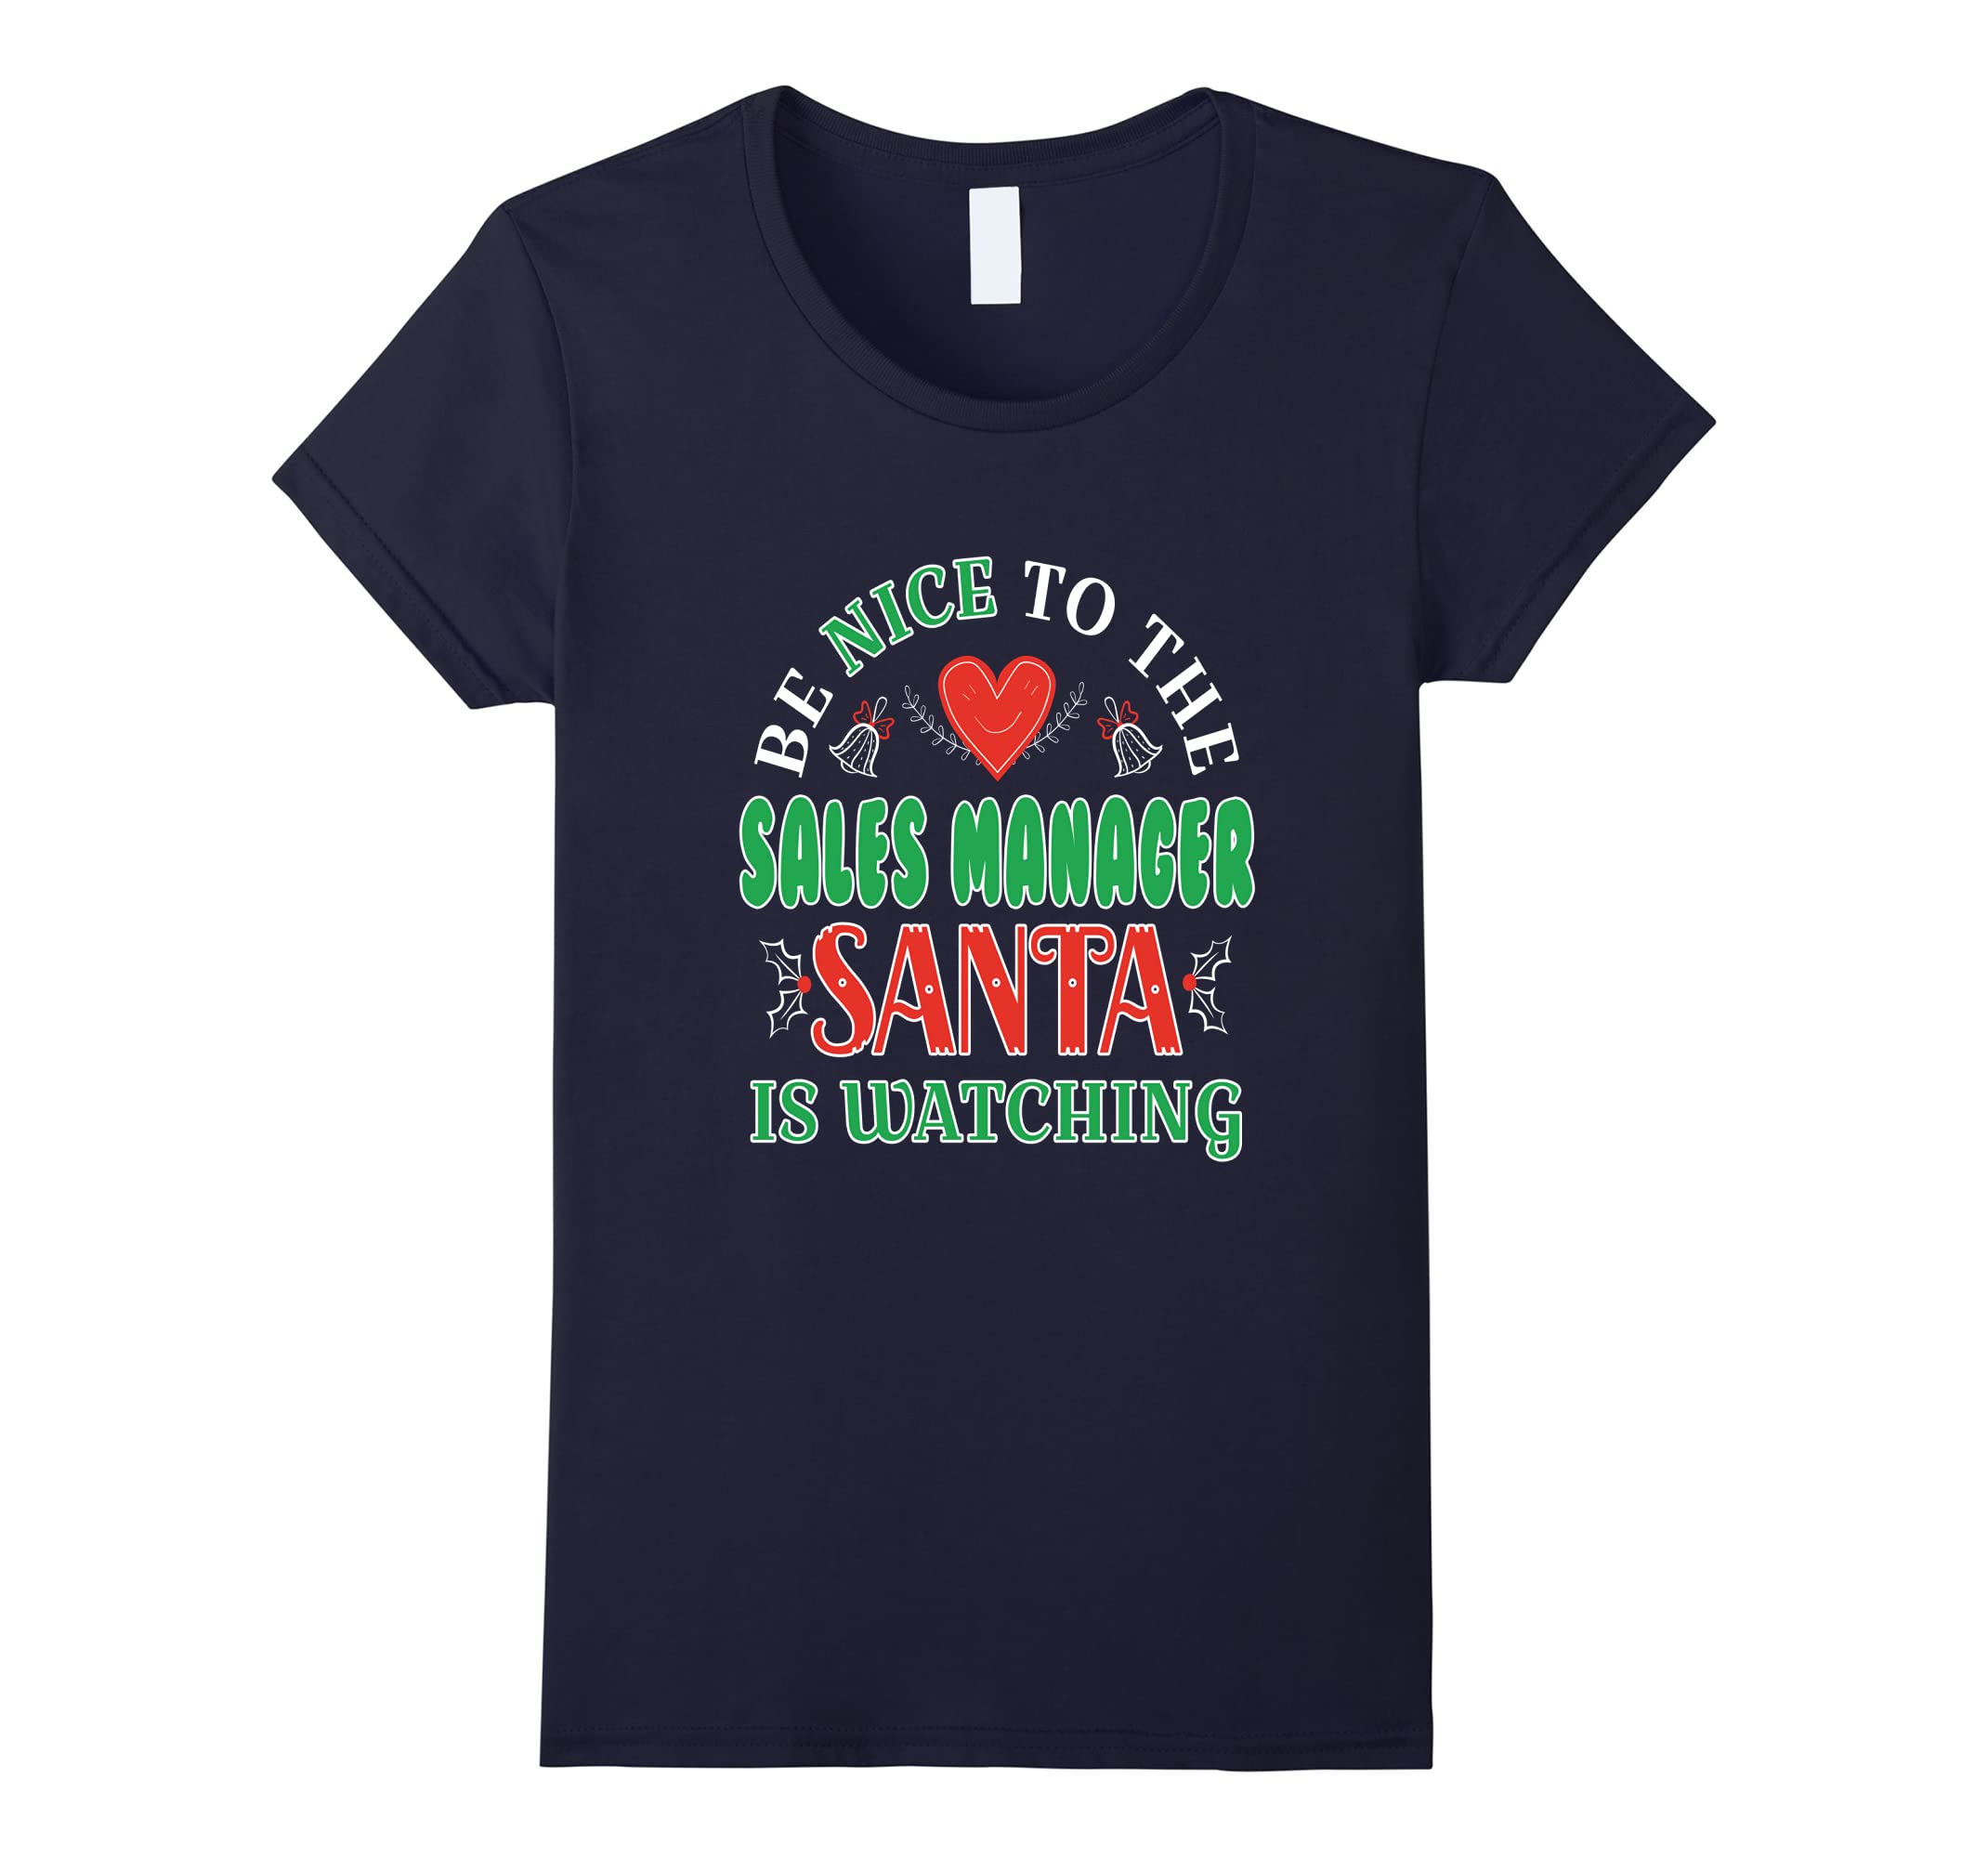 Funny Be Nice To The Sales Manager Santas Watching T-shirt